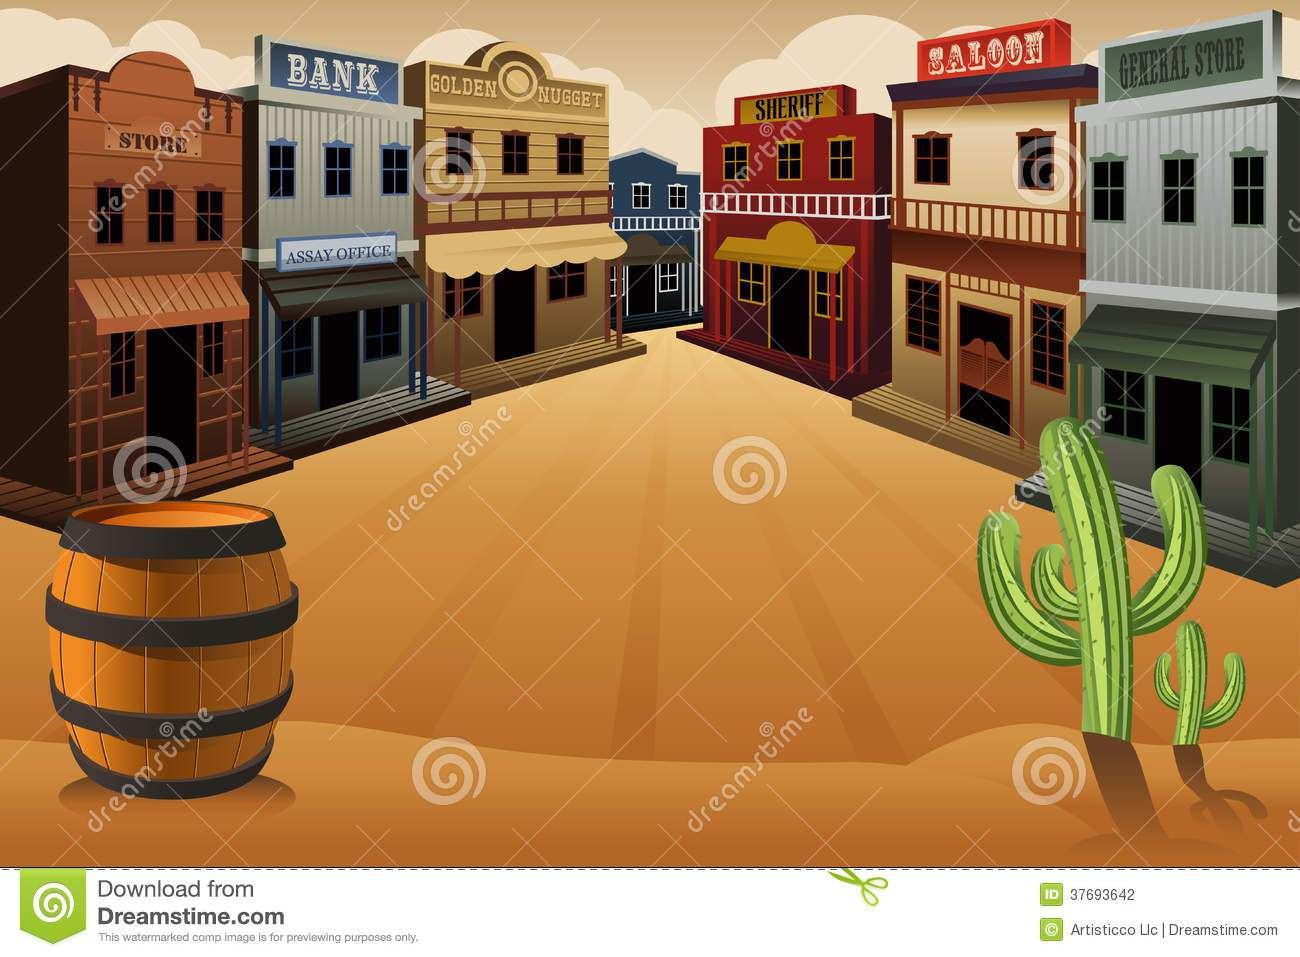 A deserted town cartoon. Background clipart wild west